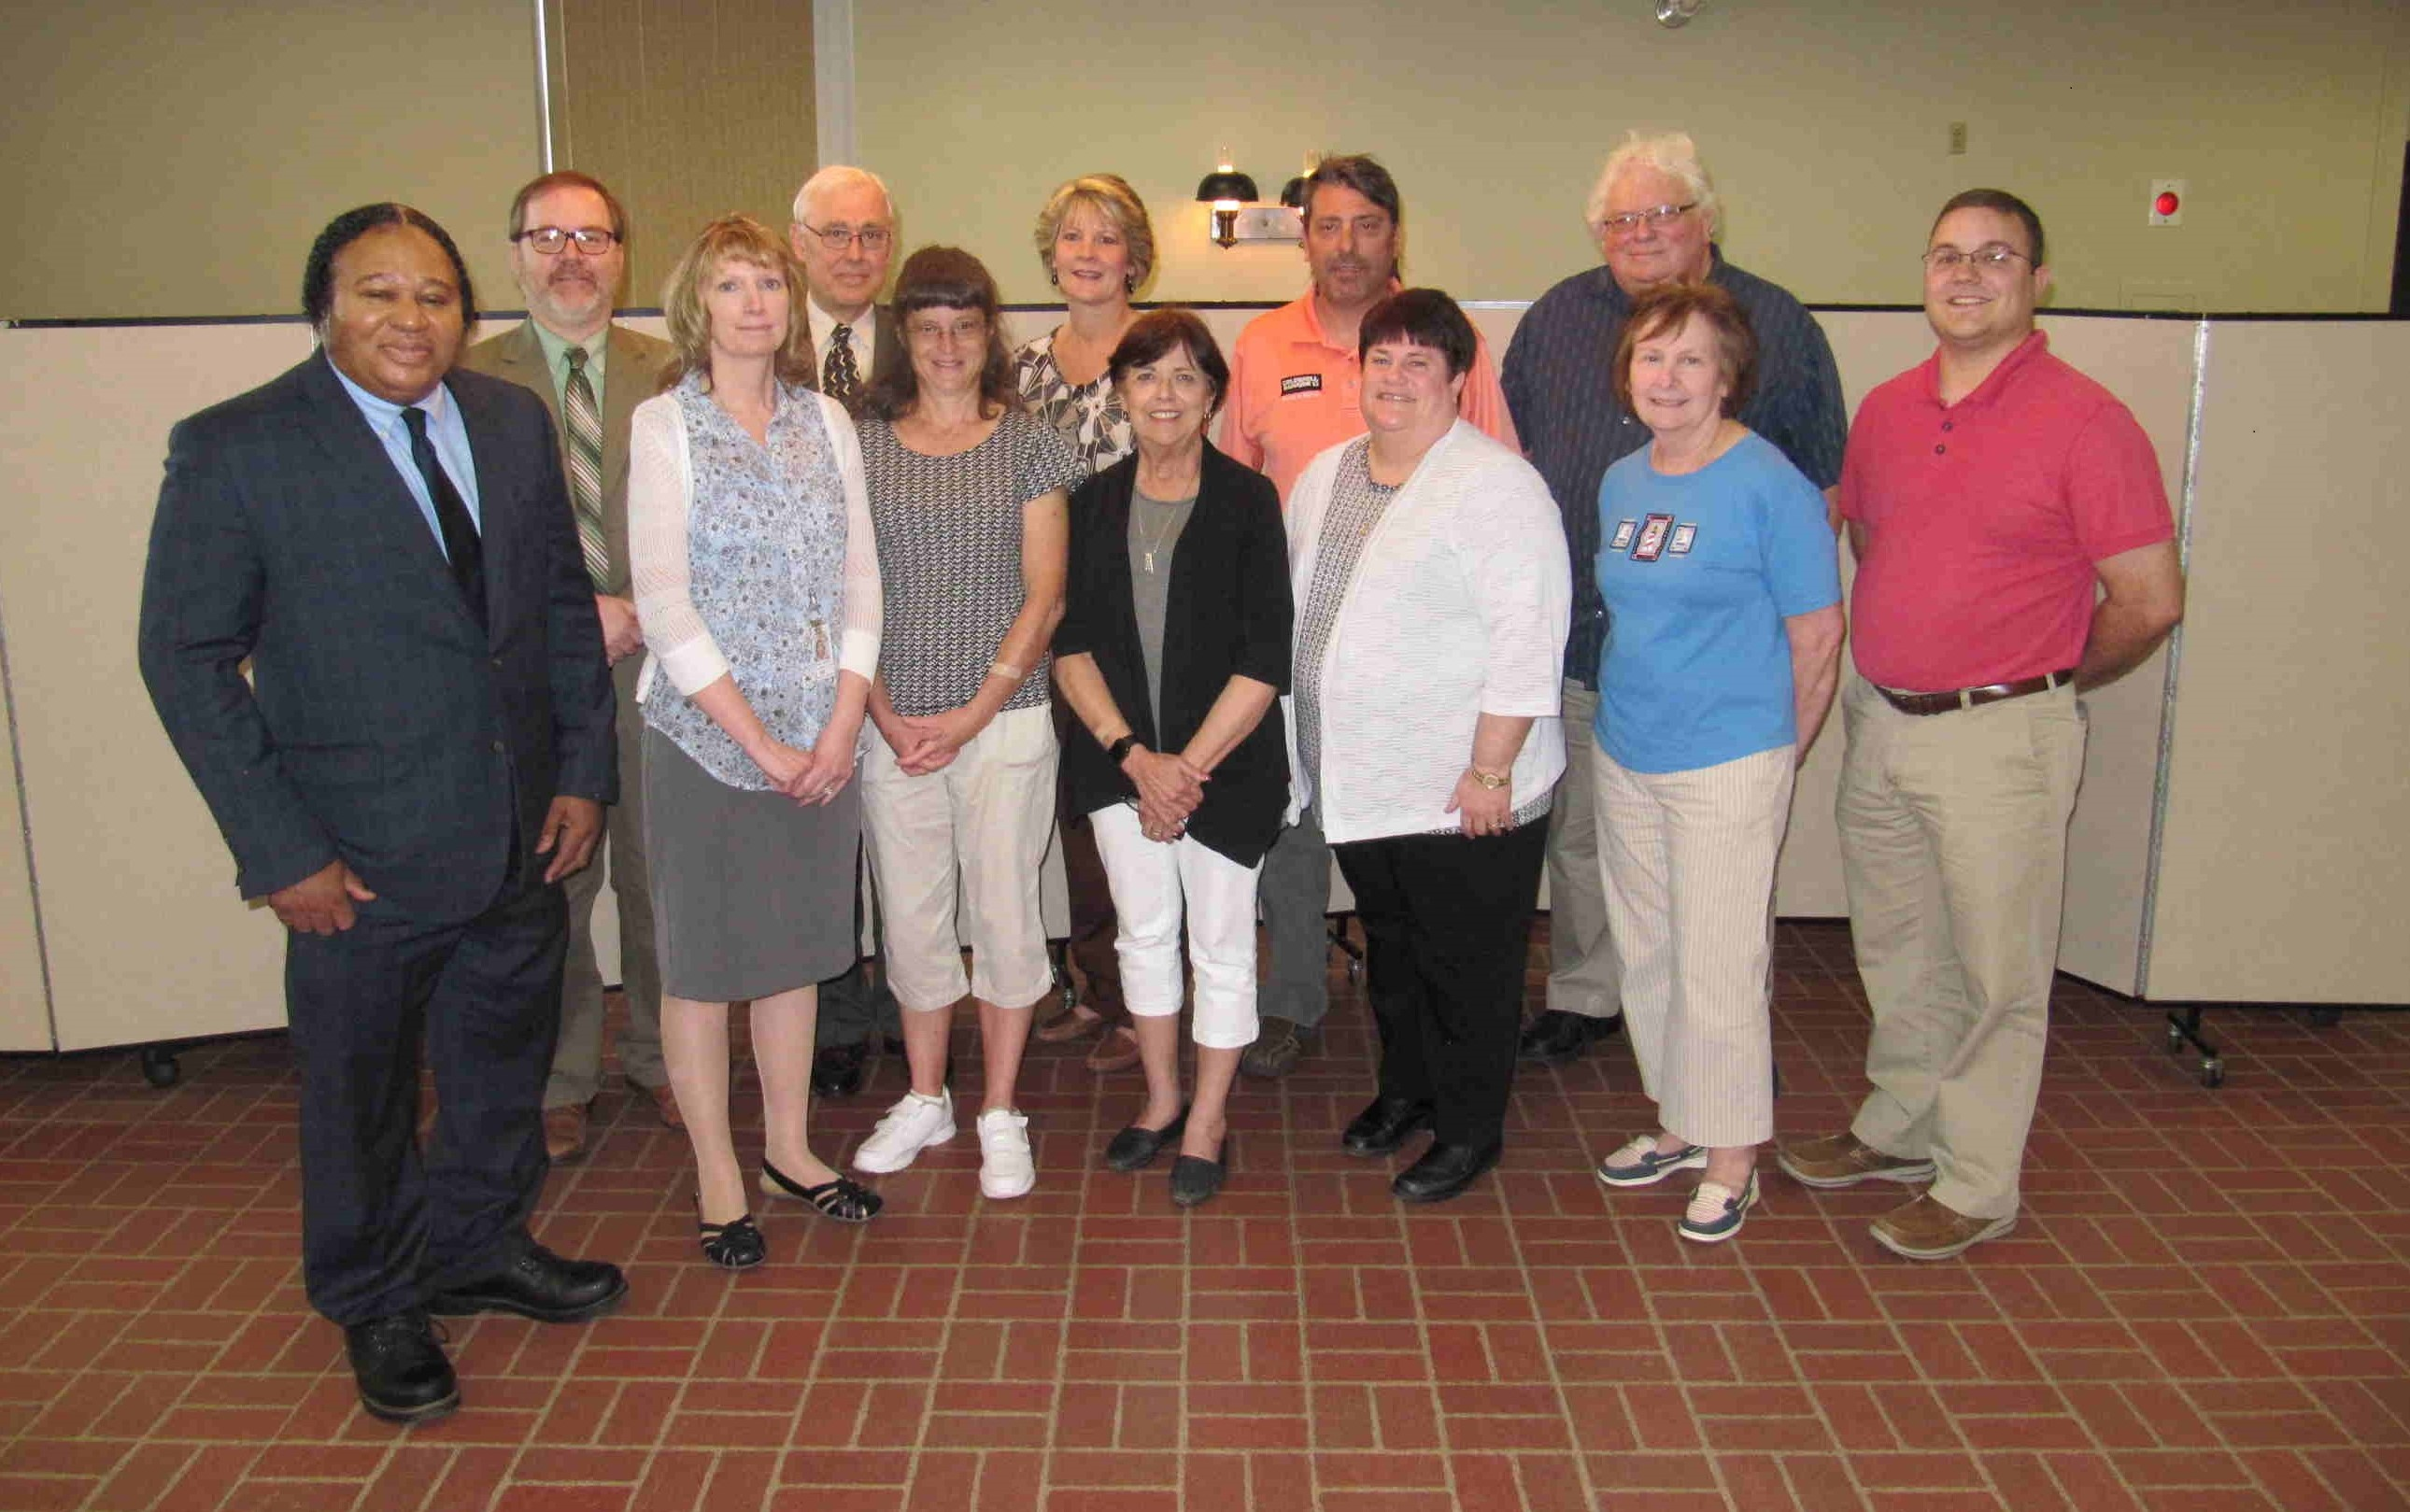 Back Row: Commissioner Wayne Brosius; Richard Fetterman (President); Lori Brown; Lee Stewart (Treasurer); Ron Wilshire (Vice President) Front Row: Granville Carter; Rebecca Mitchell; Renee Vowinckel; Robin Lutz (representing Senator Scott Hutchinson; Pam Johnson (Assistant Secretary); Deborah Shook; Zachery Zankey (representing Representative Cris Dush). Missing: Representative Donna Oberlander; Clara Belloit; Melva McGranor; Mayor Rich Beck; Commissioner Jack Matson; Amy Ortz